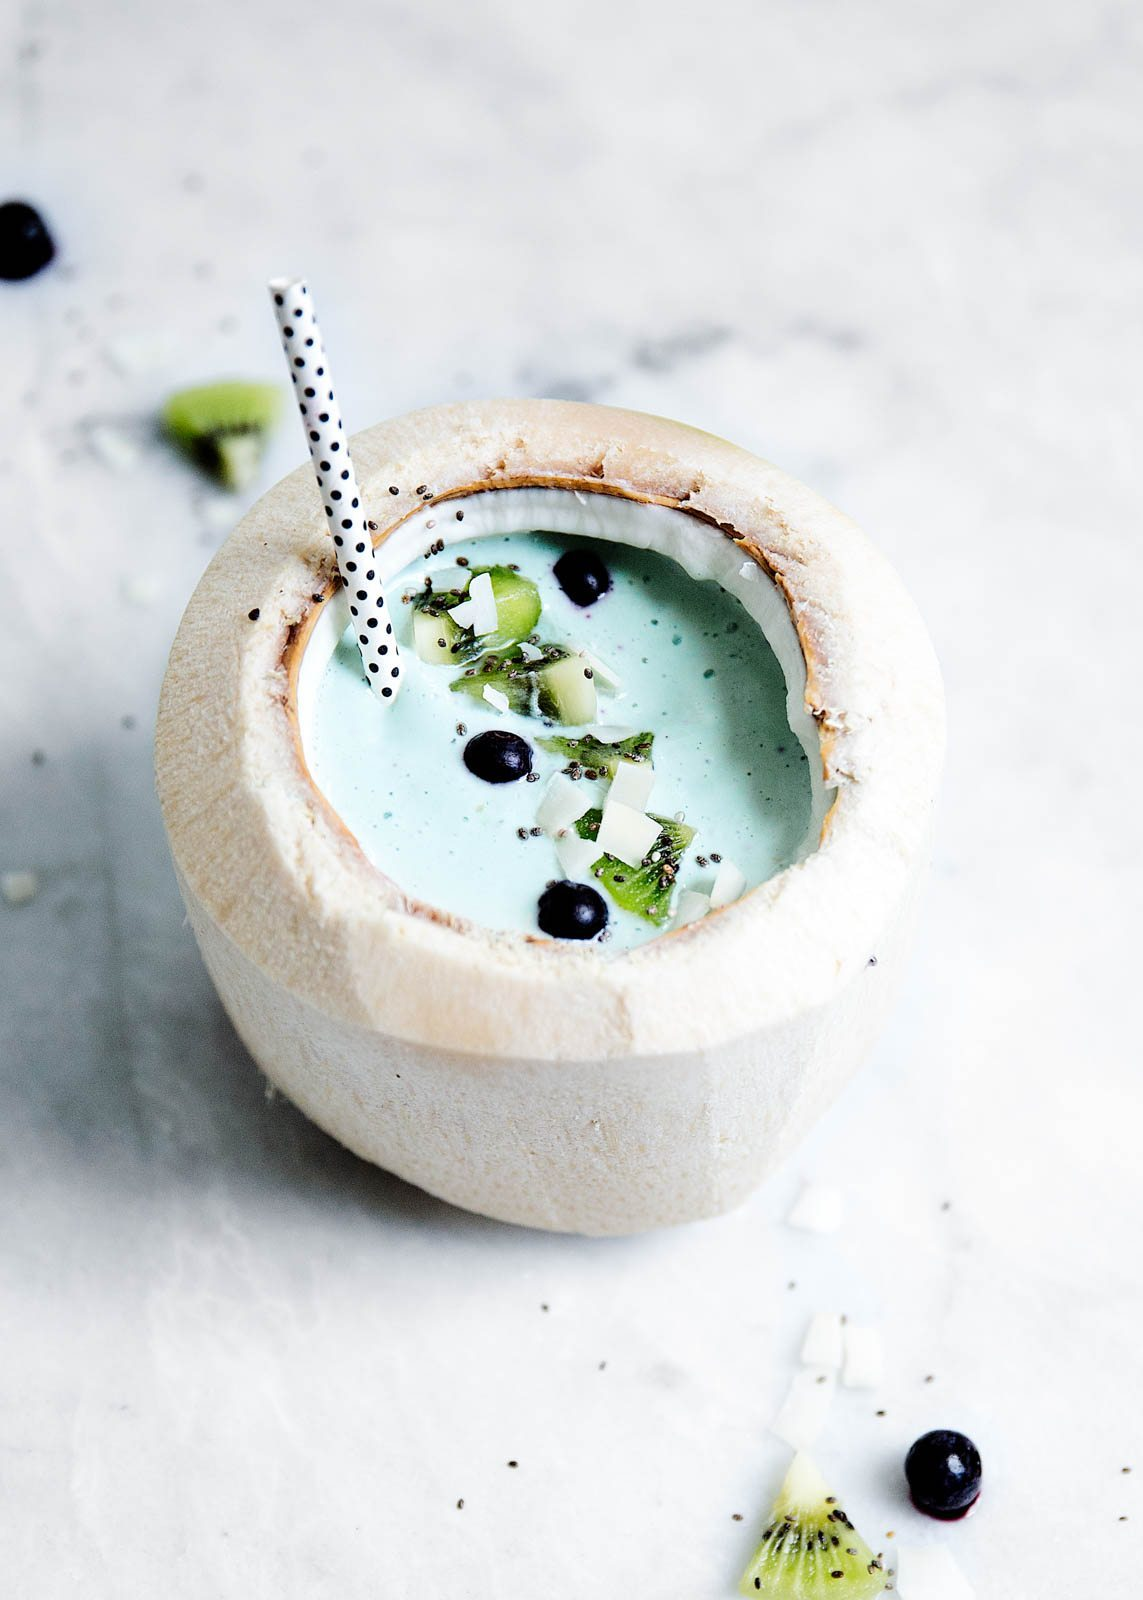 Blue Lagoon Smoothie Recipe   12 Summer Smoothies plus loads of party recipes, entertaining tips, cocktail recipes and more from @cydconverse